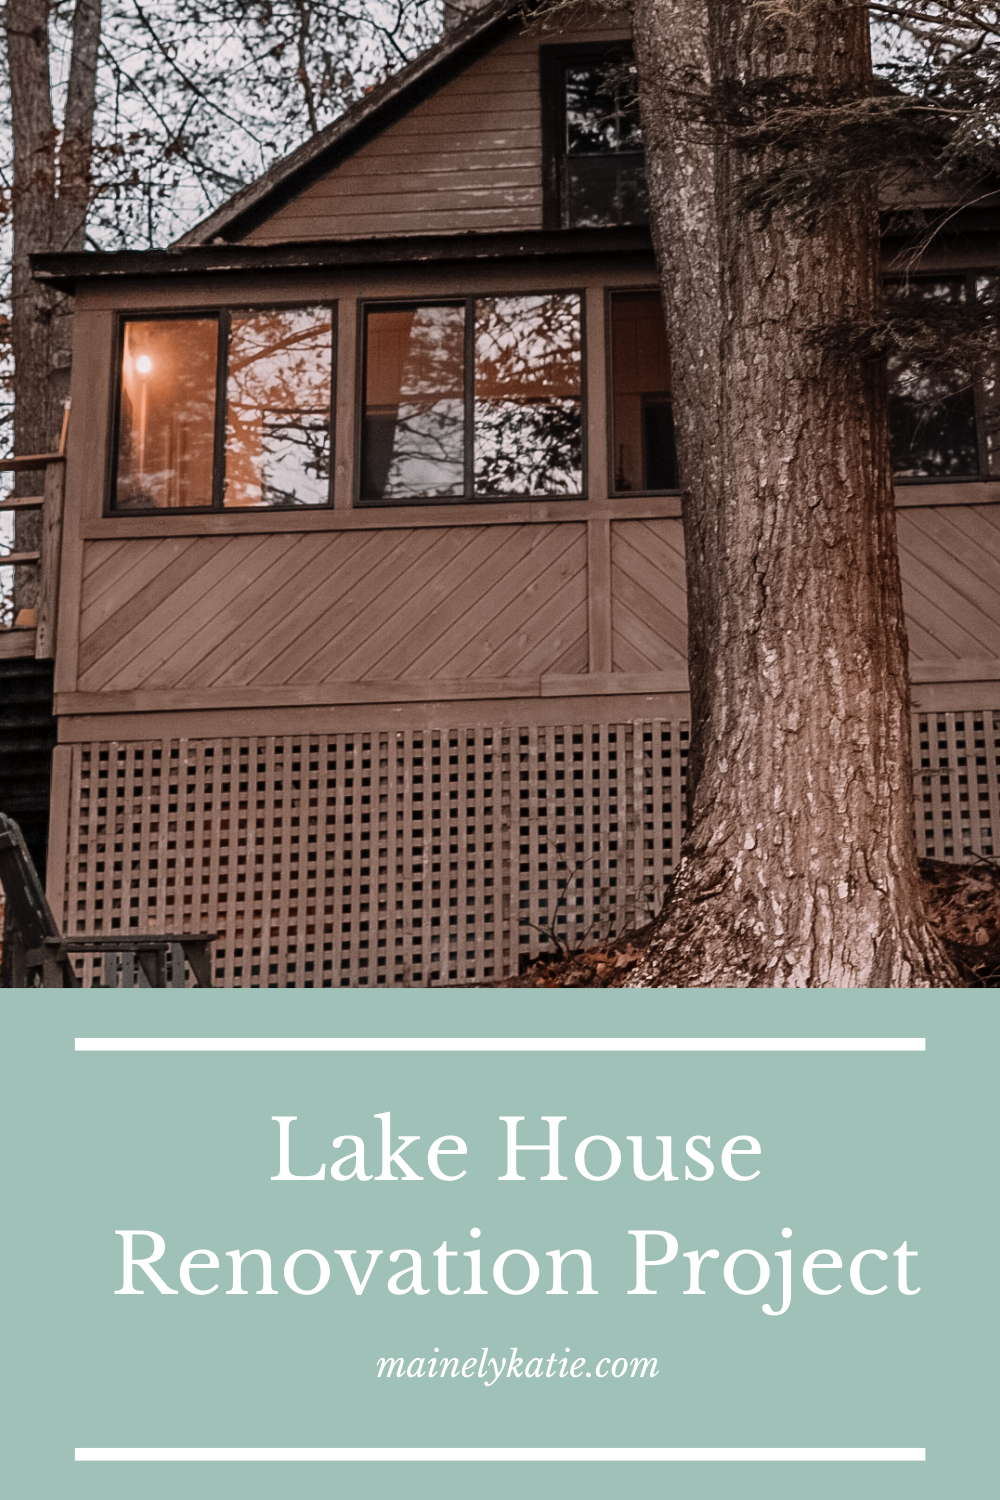 Our Lake House Renovation Project